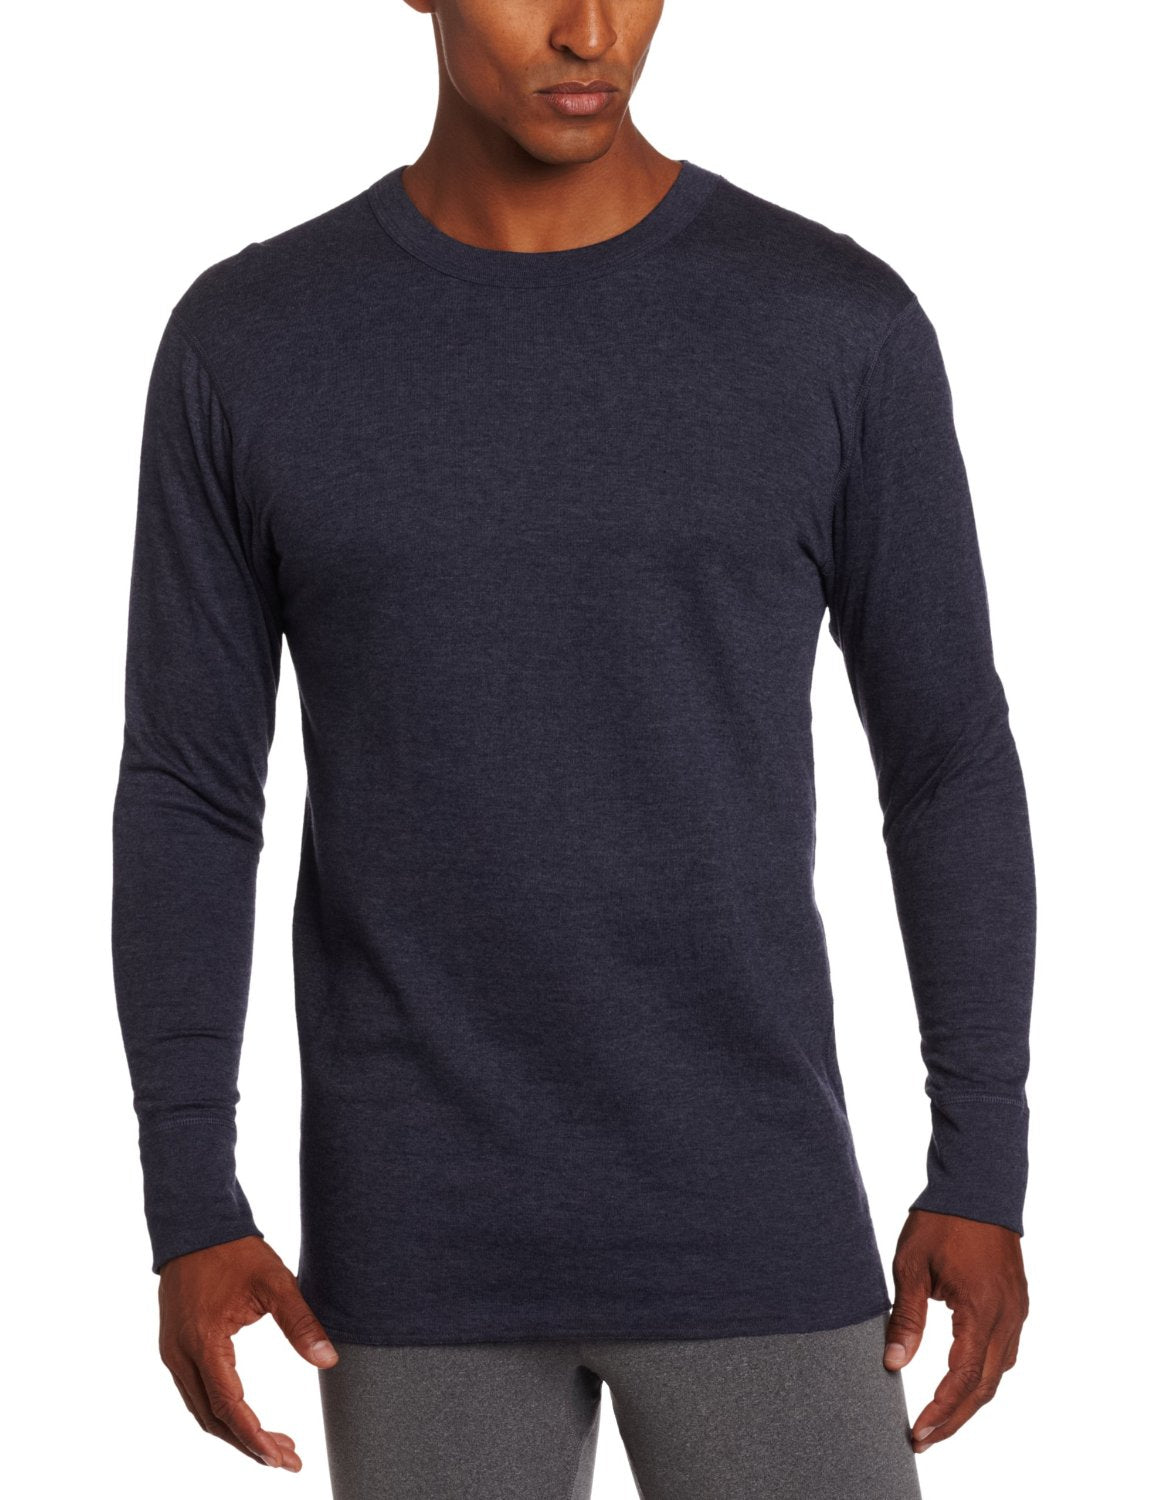 30247bce KMW1 - Duofold Thermals Mid-Weight Men's Long Sleeve Crew – NY Lingerie